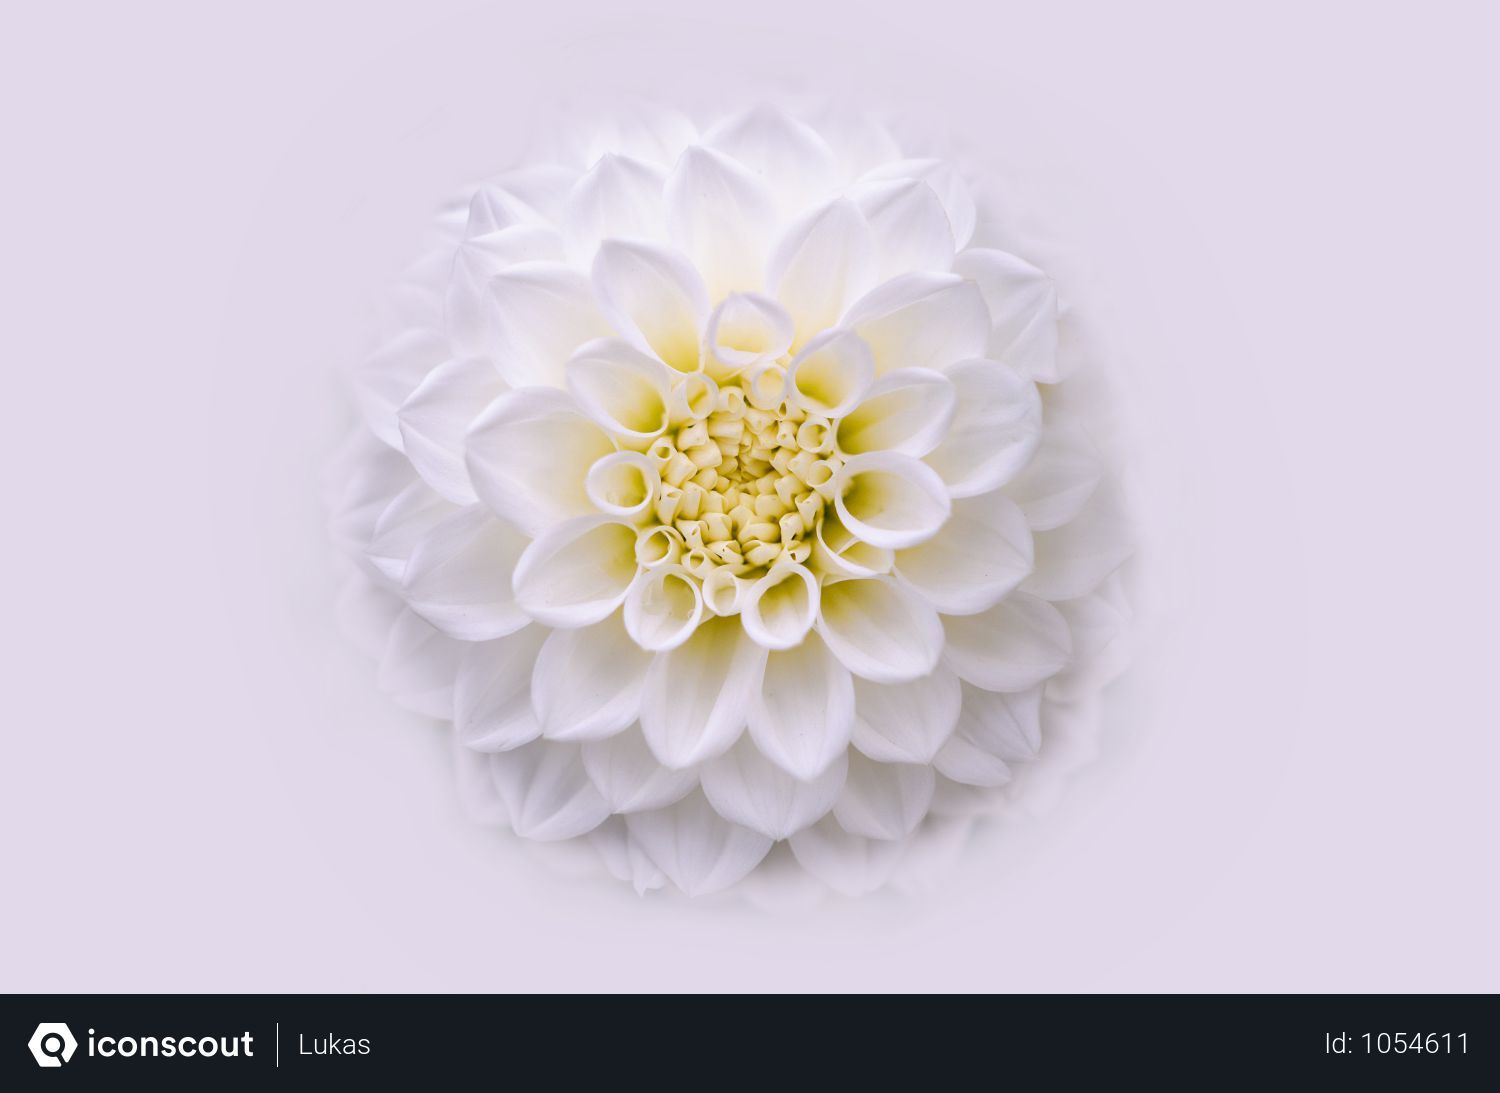 Free Dahlia Flower Photo Download In Png Jpg Format Flower Photos Dahlia Flower Flowers